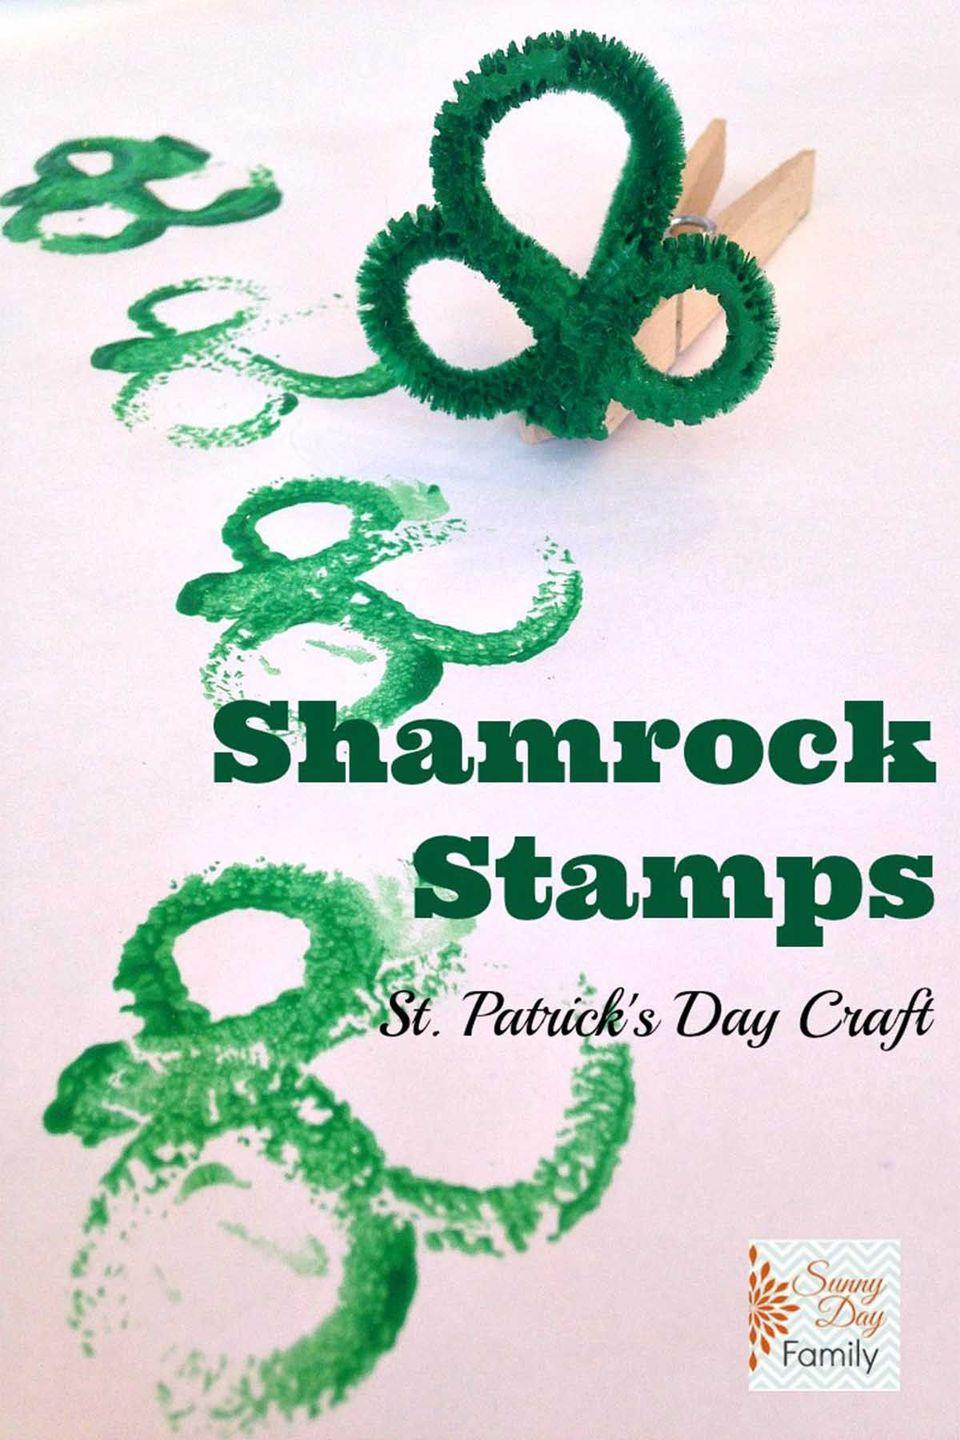 """<p>Make <a href=""""https://www.womansday.com/style/beauty/g2220/st-patricks-day-nail-art/"""" rel=""""nofollow noopener"""" target=""""_blank"""" data-ylk=""""slk:shamrock shapes"""" class=""""link rapid-noclick-resp"""">shamrock shapes</a> for cards, gifts, and more with these DIY stamps.</p><p><em>Get the tutorial at <a href=""""http://www.sunnydayfamily.com/2015/02/shamrock-stamps.html"""" rel=""""nofollow noopener"""" target=""""_blank"""" data-ylk=""""slk:Sunny Day Family"""" class=""""link rapid-noclick-resp"""">Sunny Day Family</a>.</em> </p>"""